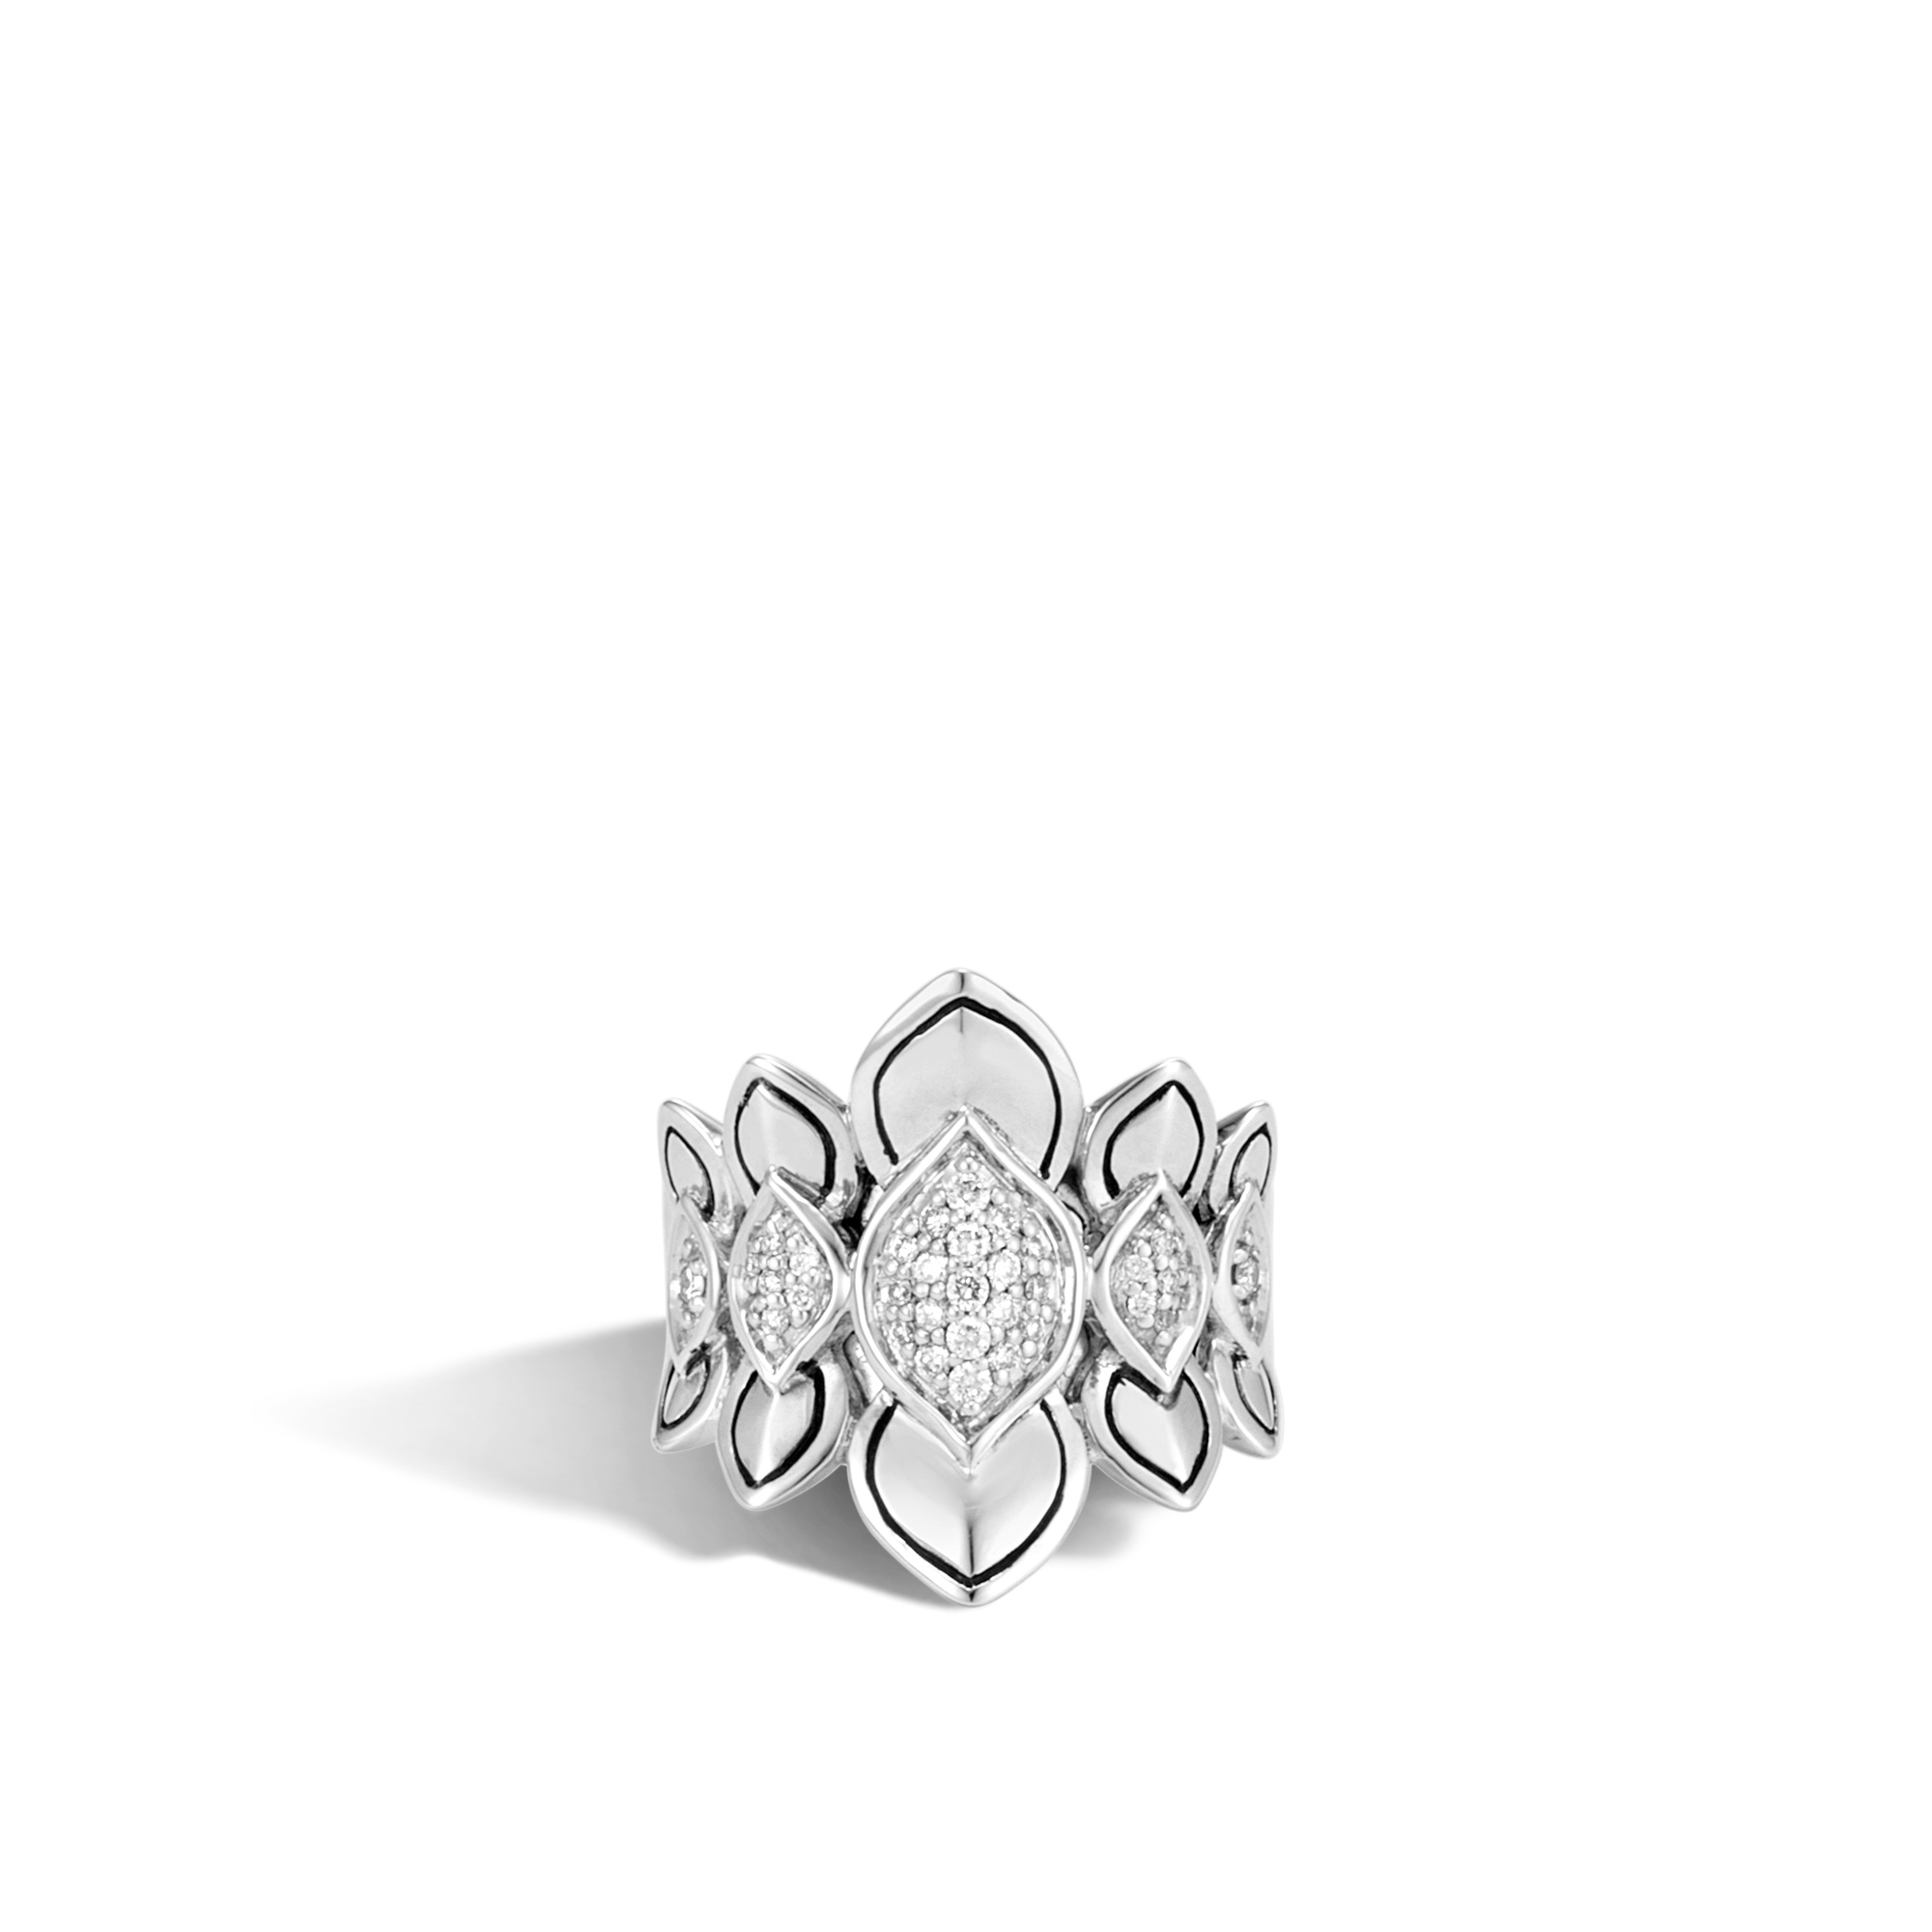 Legends Naga Saddle Ring in Silver with Diamonds, White Diamond, large